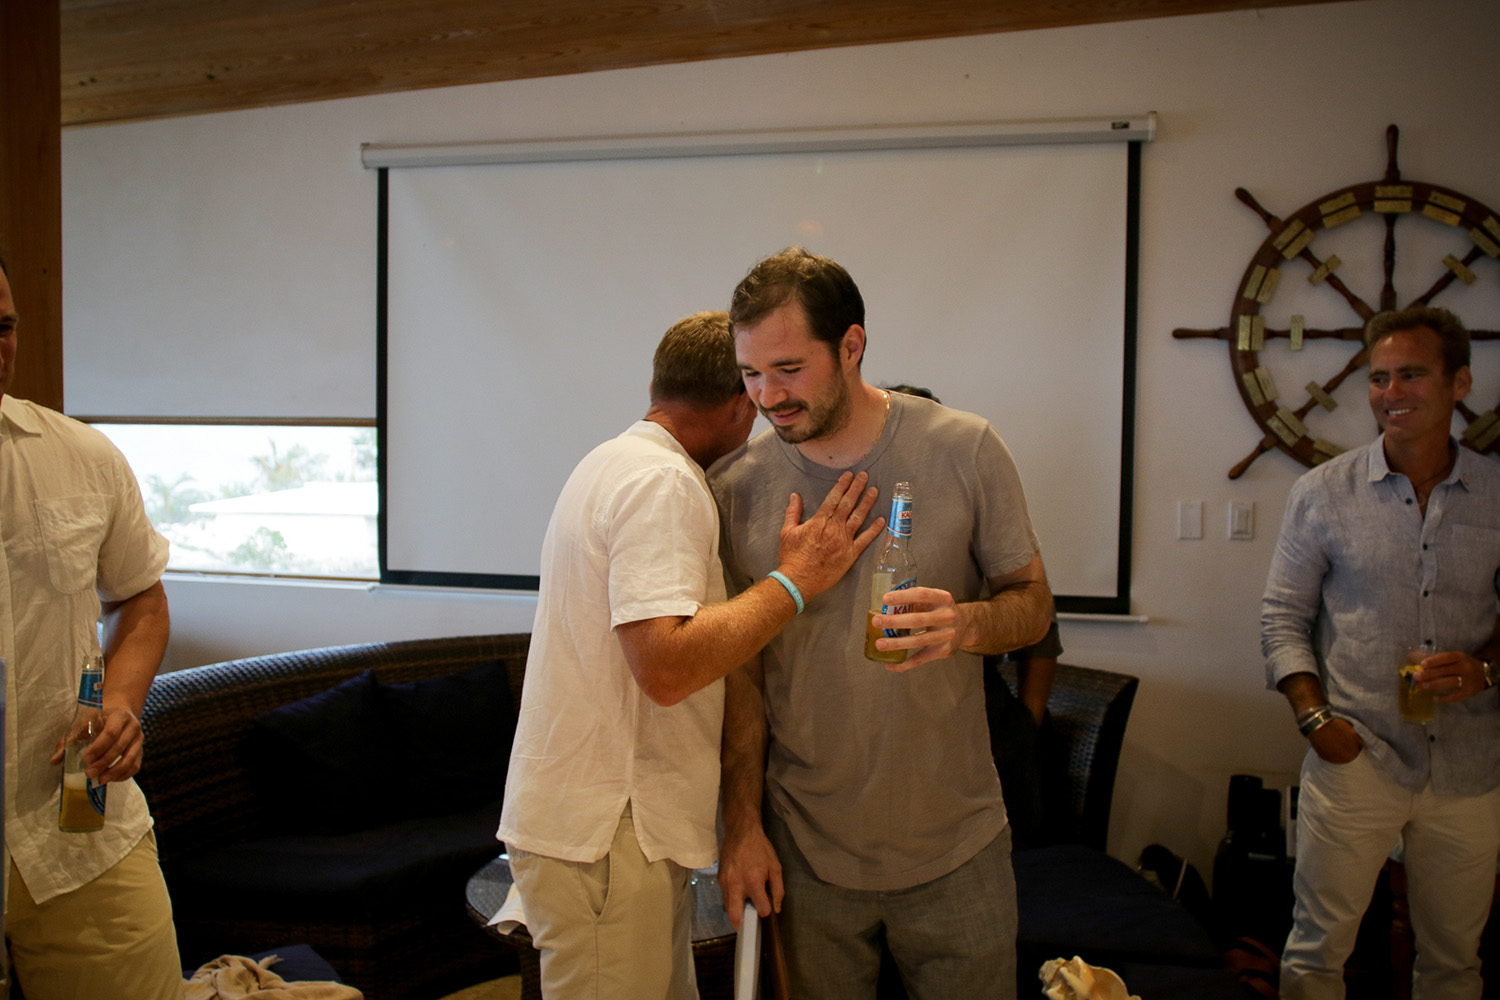 Nick Del Vecchio (Fall 2002) sharing a moment with Chris Maxey (Co-Founder).